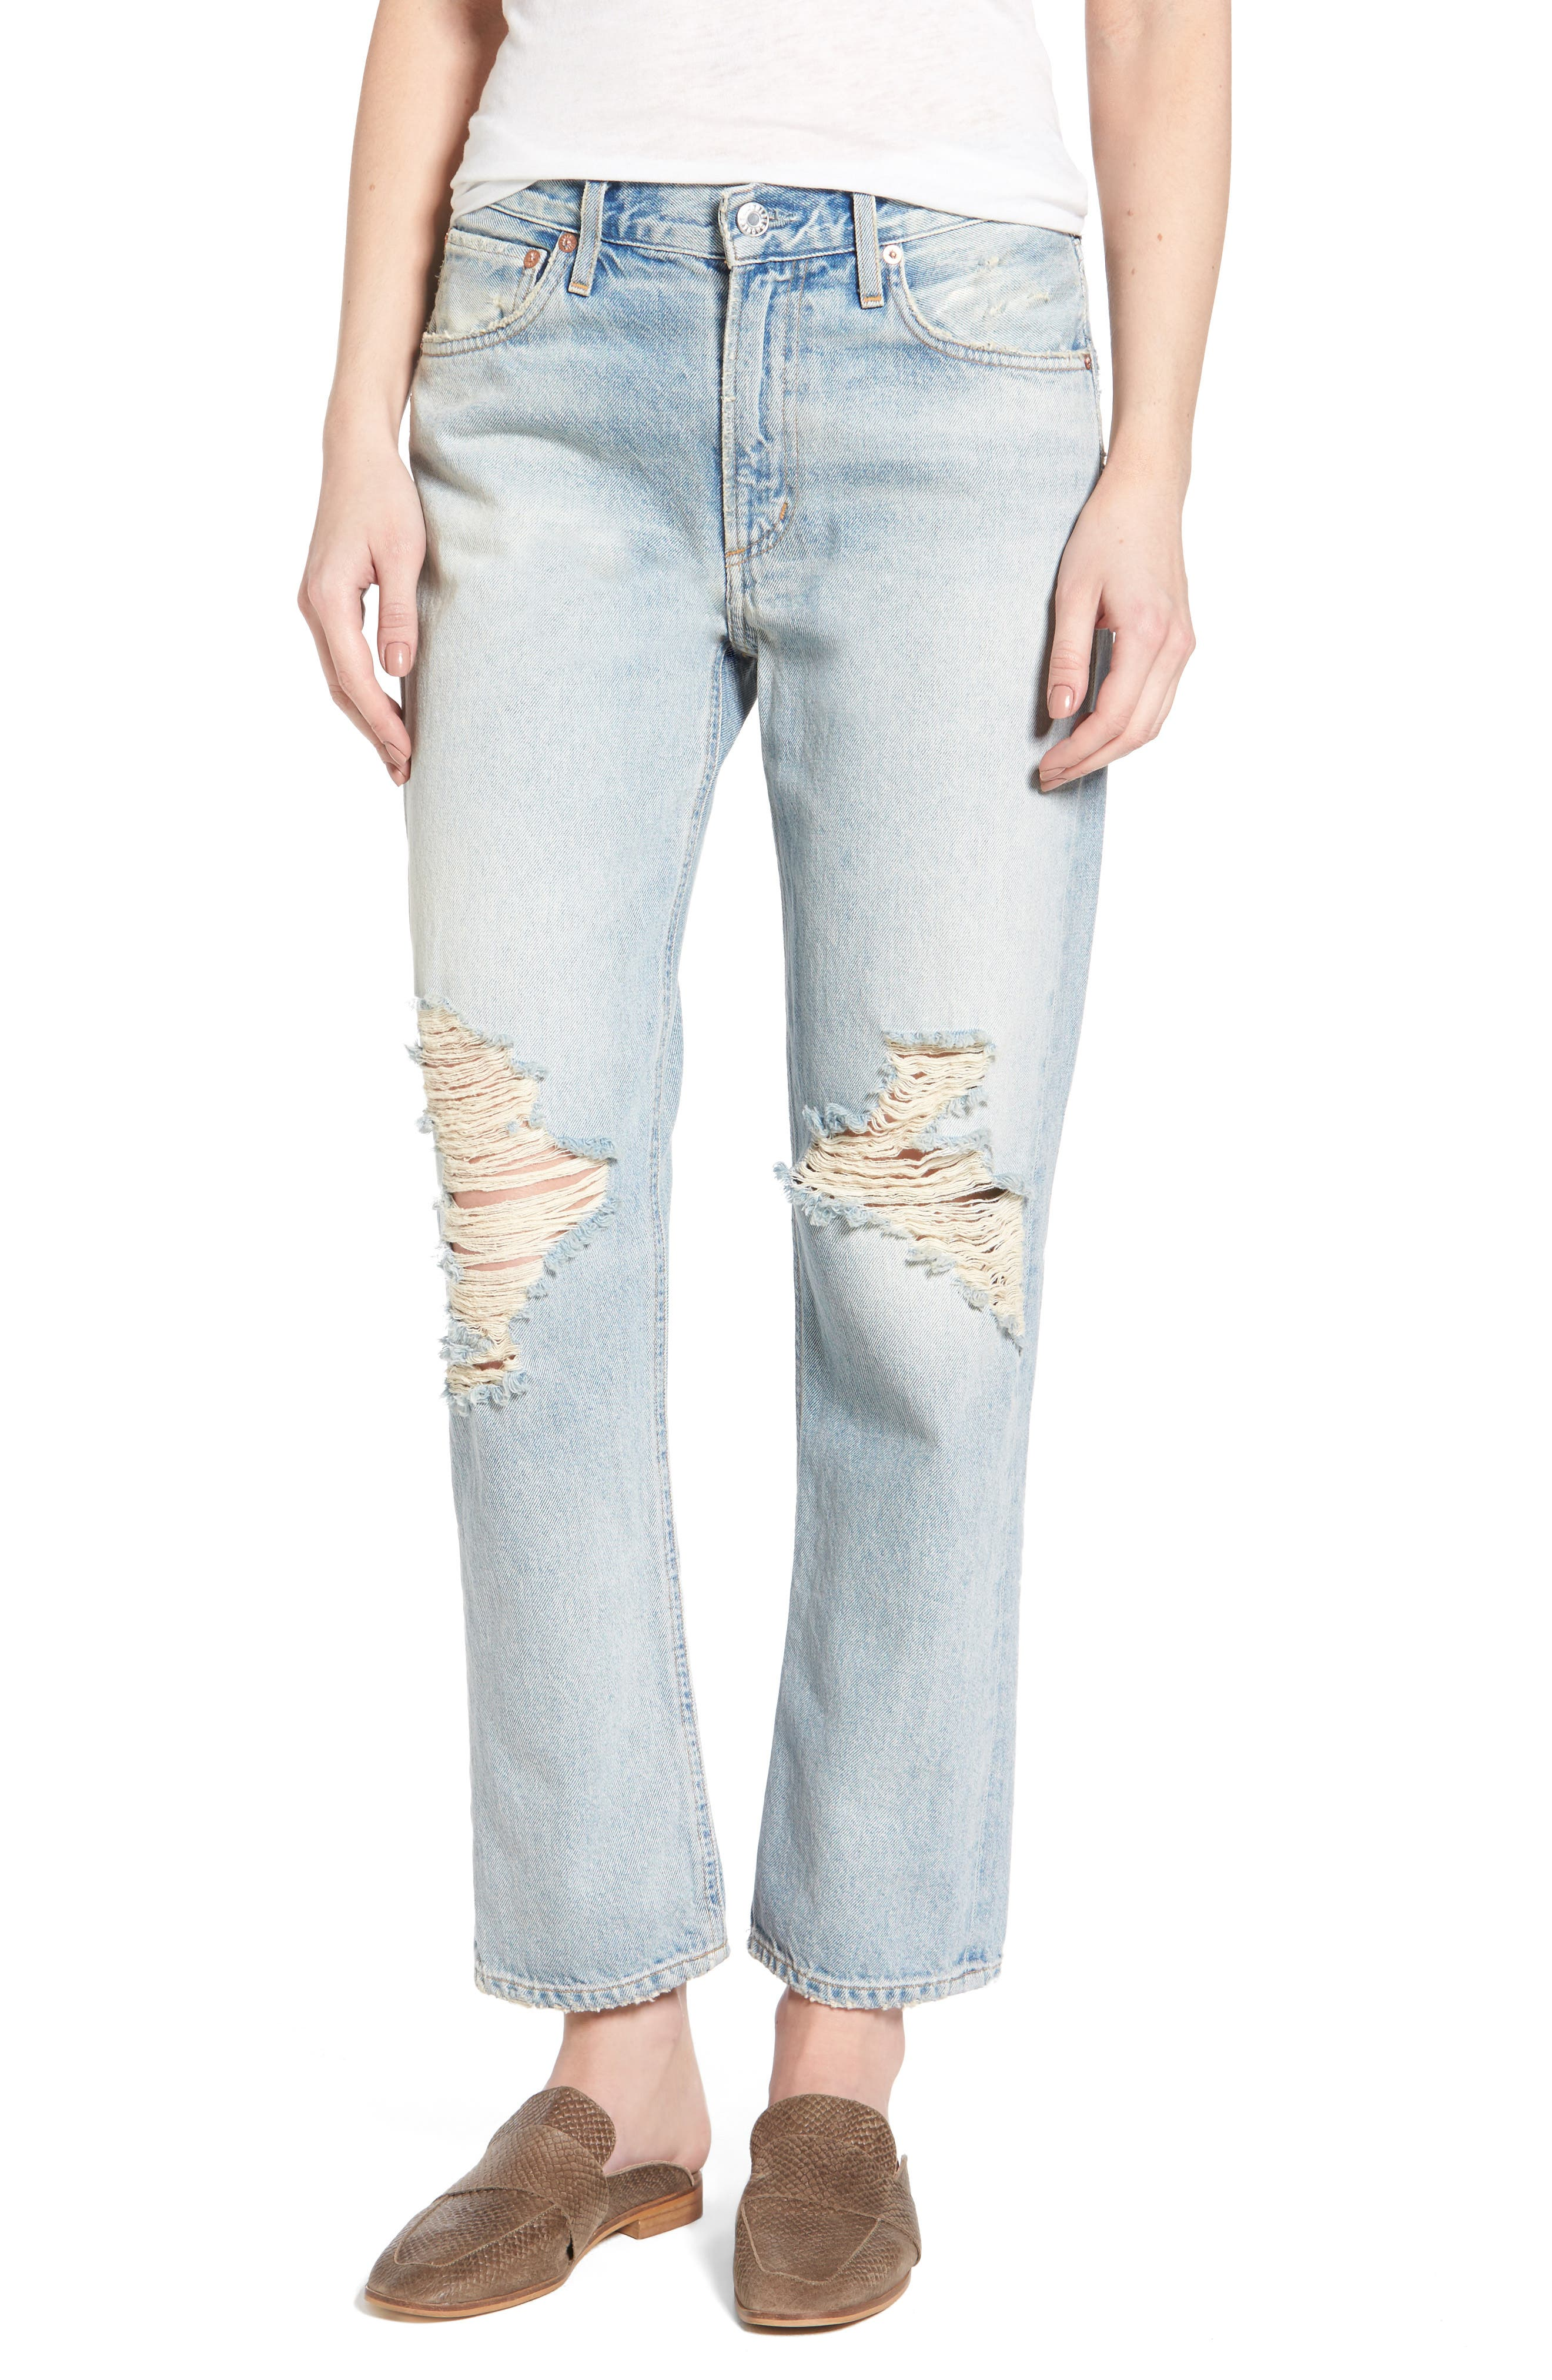 Alternate Image 1 Selected - AGOLDE Ripped High Waist Straight Leg Jeans (Runaway)